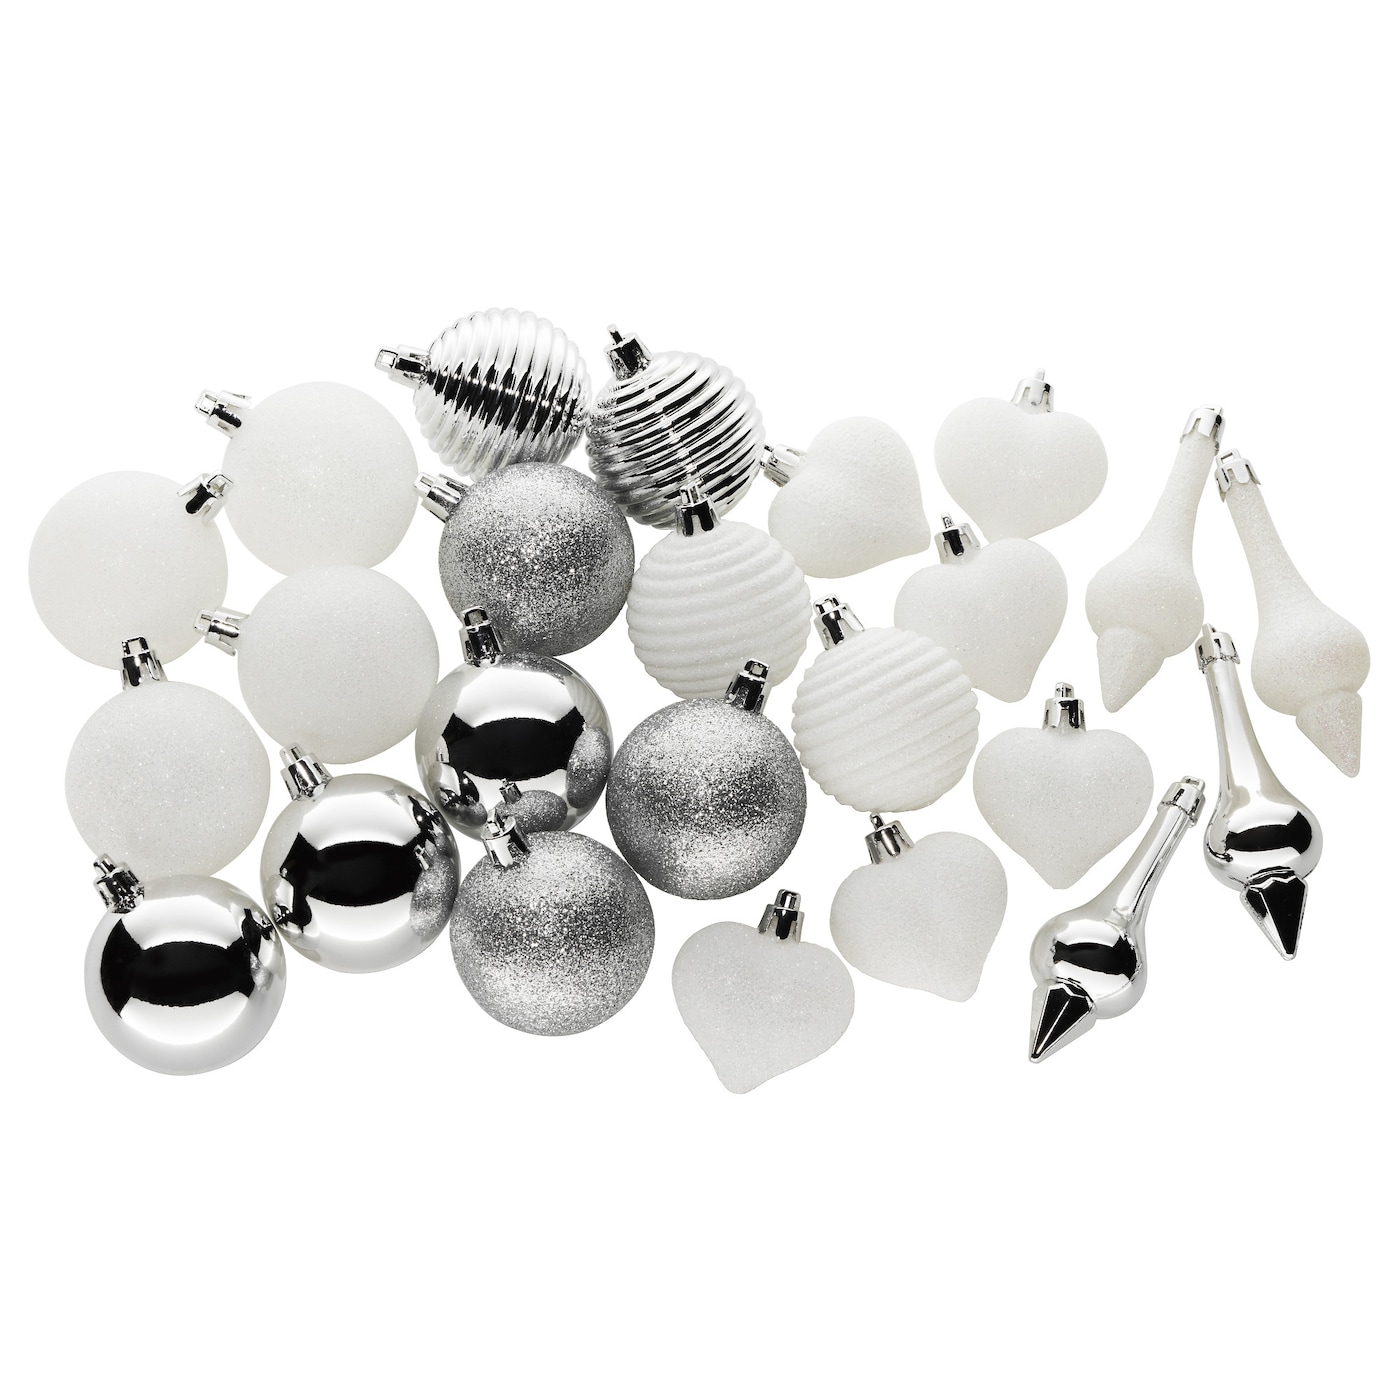 IKEA VINTER 2017 24-piece hanging decoration set